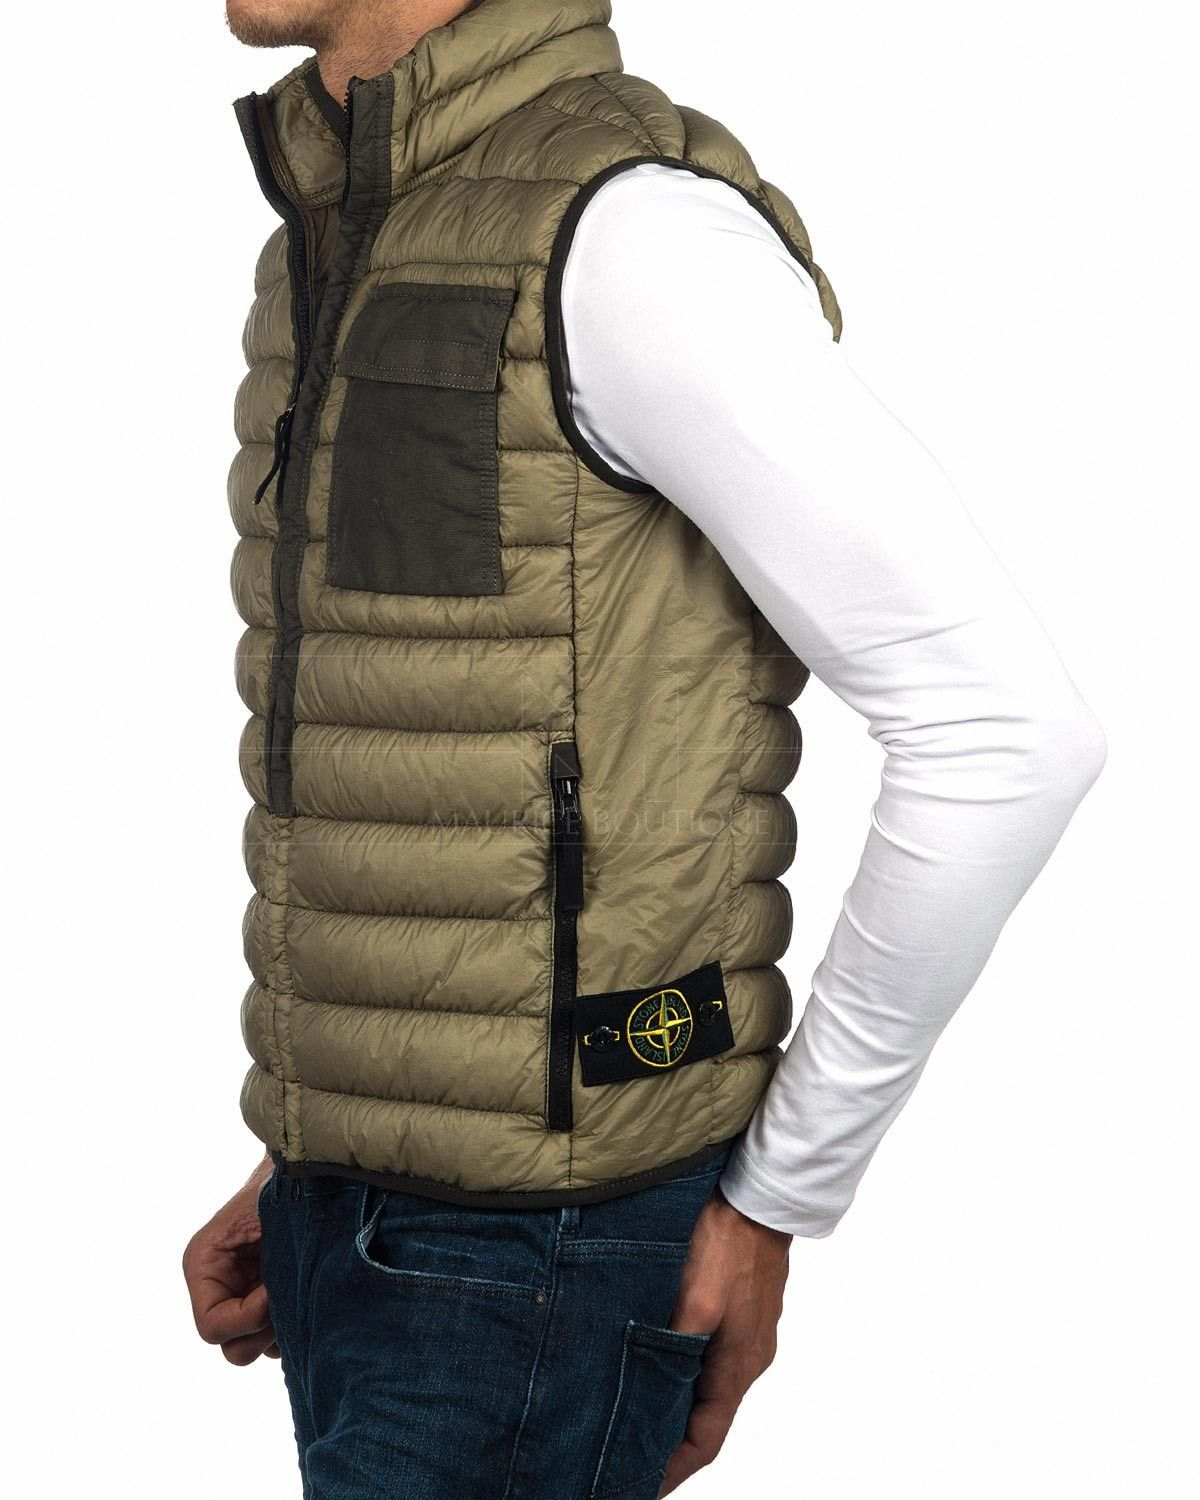 Stone Island Gilet - Garment Dyed Micro Yarn Down Packable - Olive G0424    Kleidung   Pinterest   Kleidung 987ca7e46f